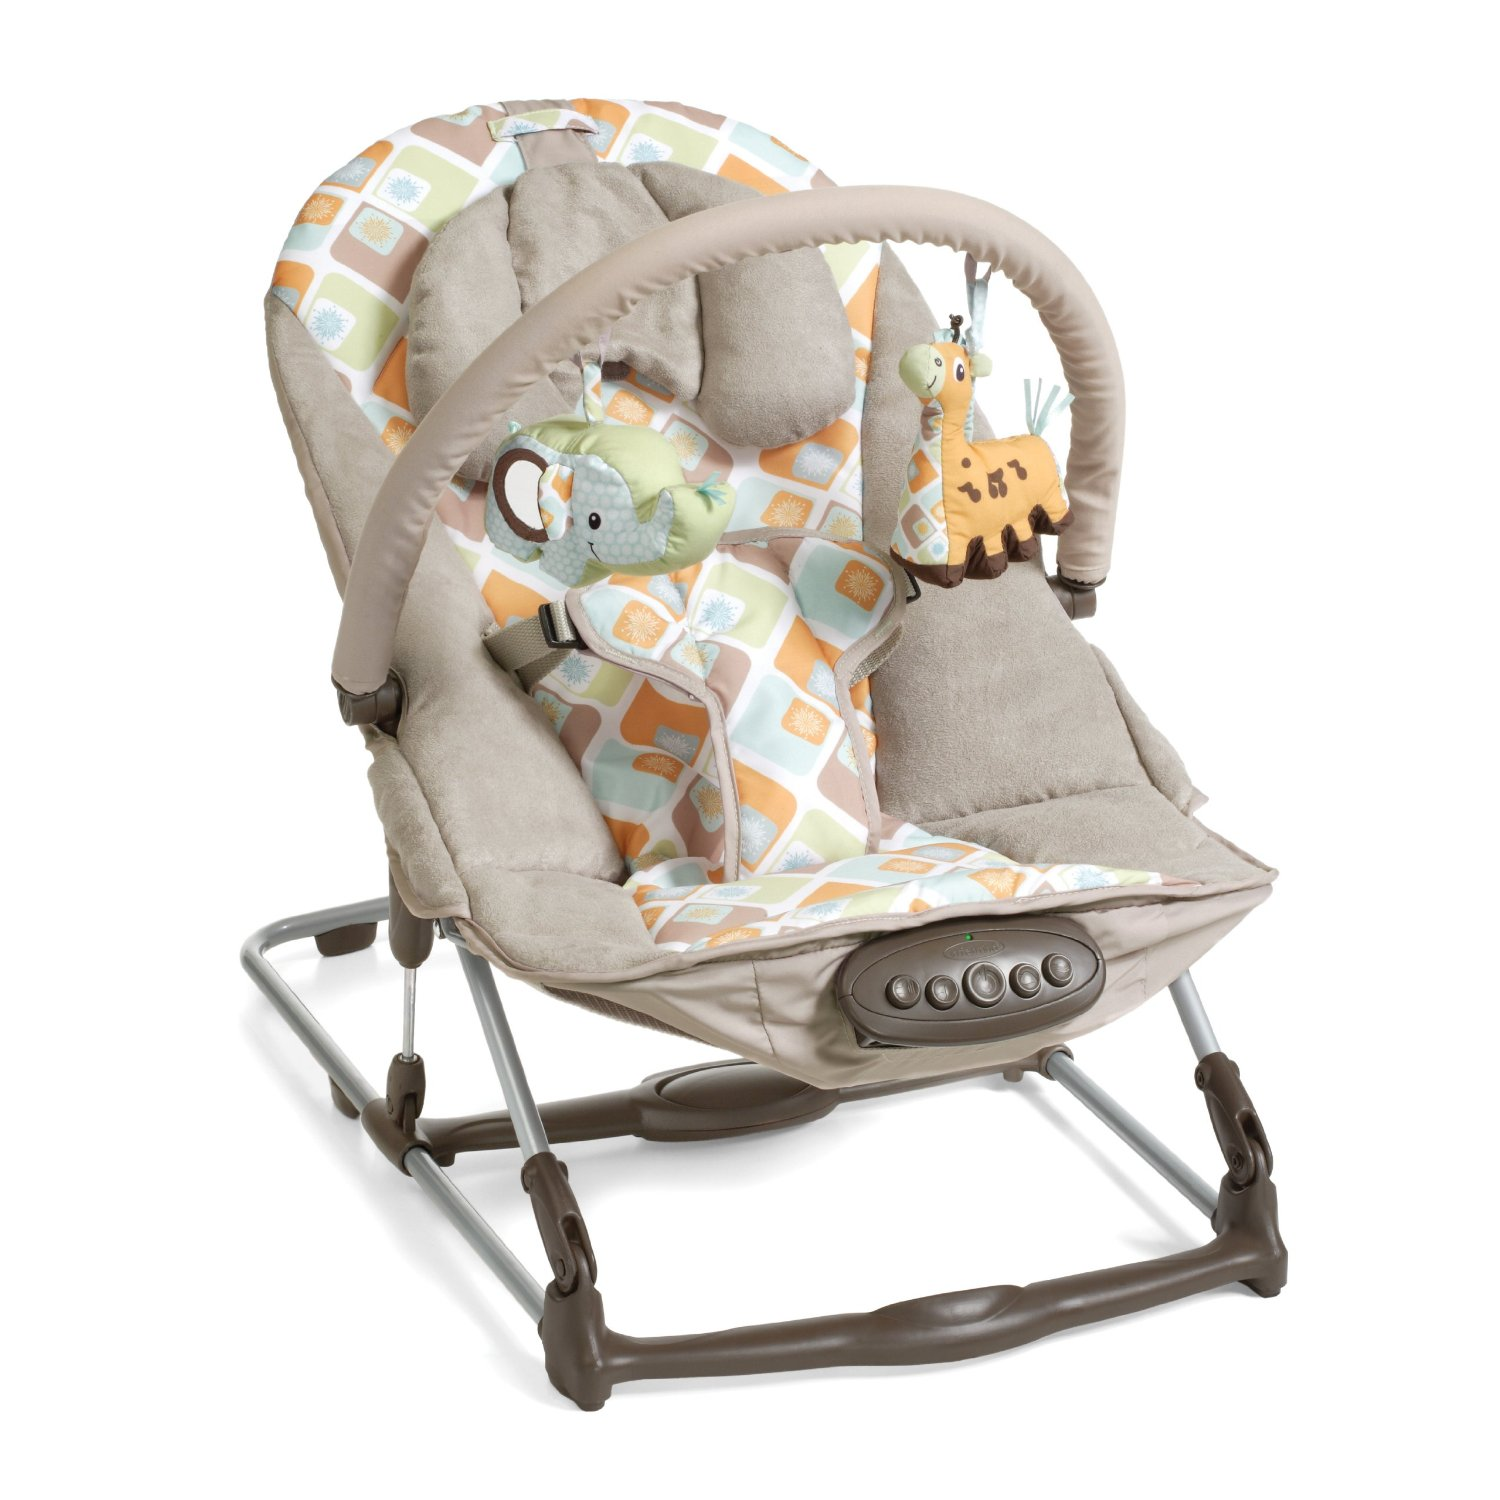 Bouncy Chair Next Stop Another Baby Top 10 List Baby Chair Swing